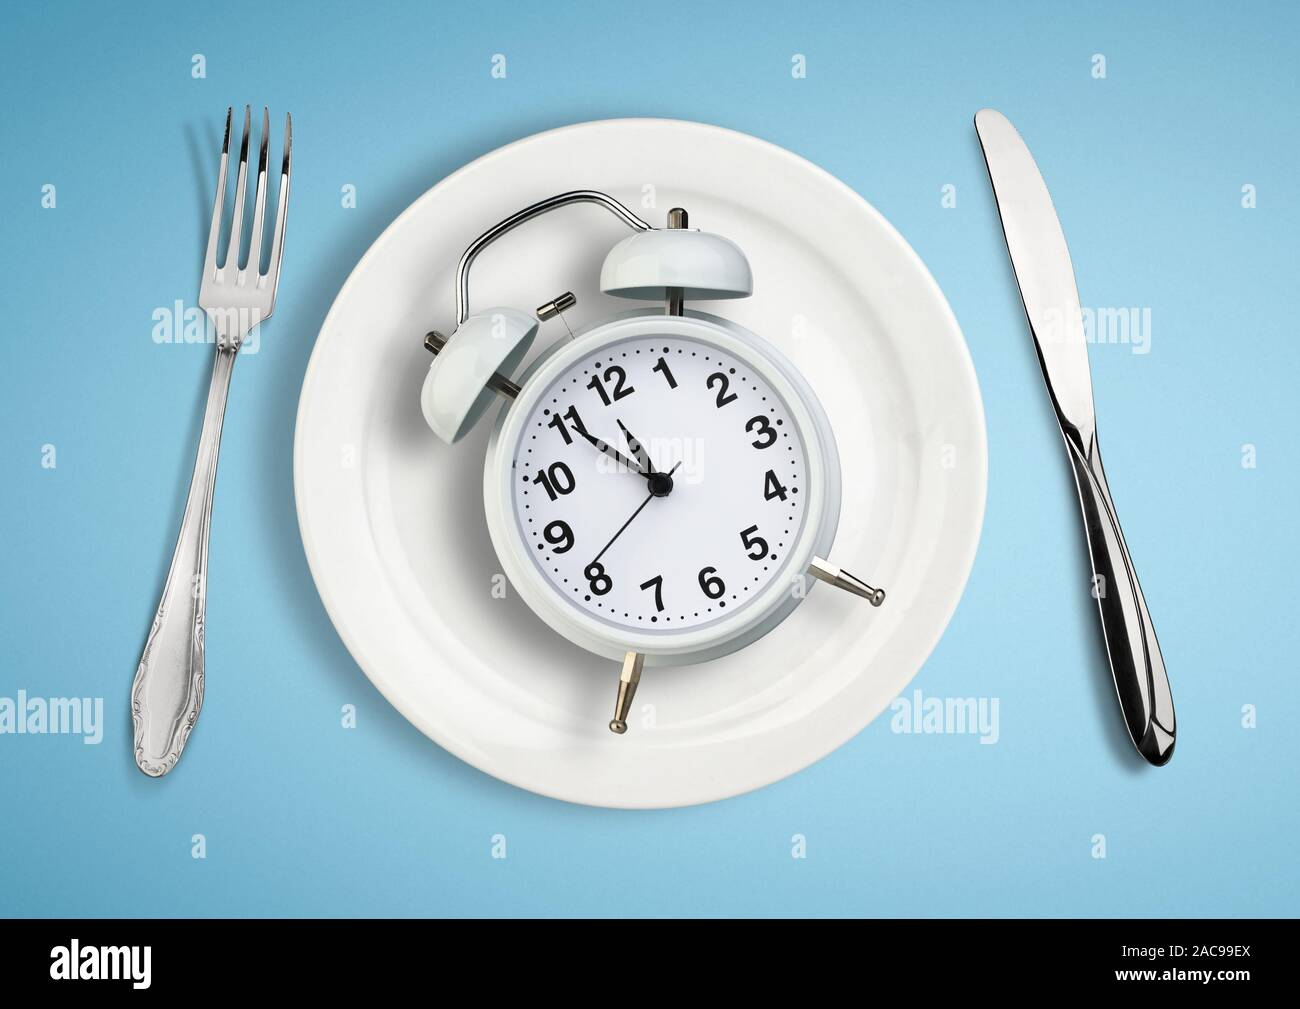 Concept of intermittent fasting, lunchtime, diet and weight loss. Clock on plate. Stock Photo